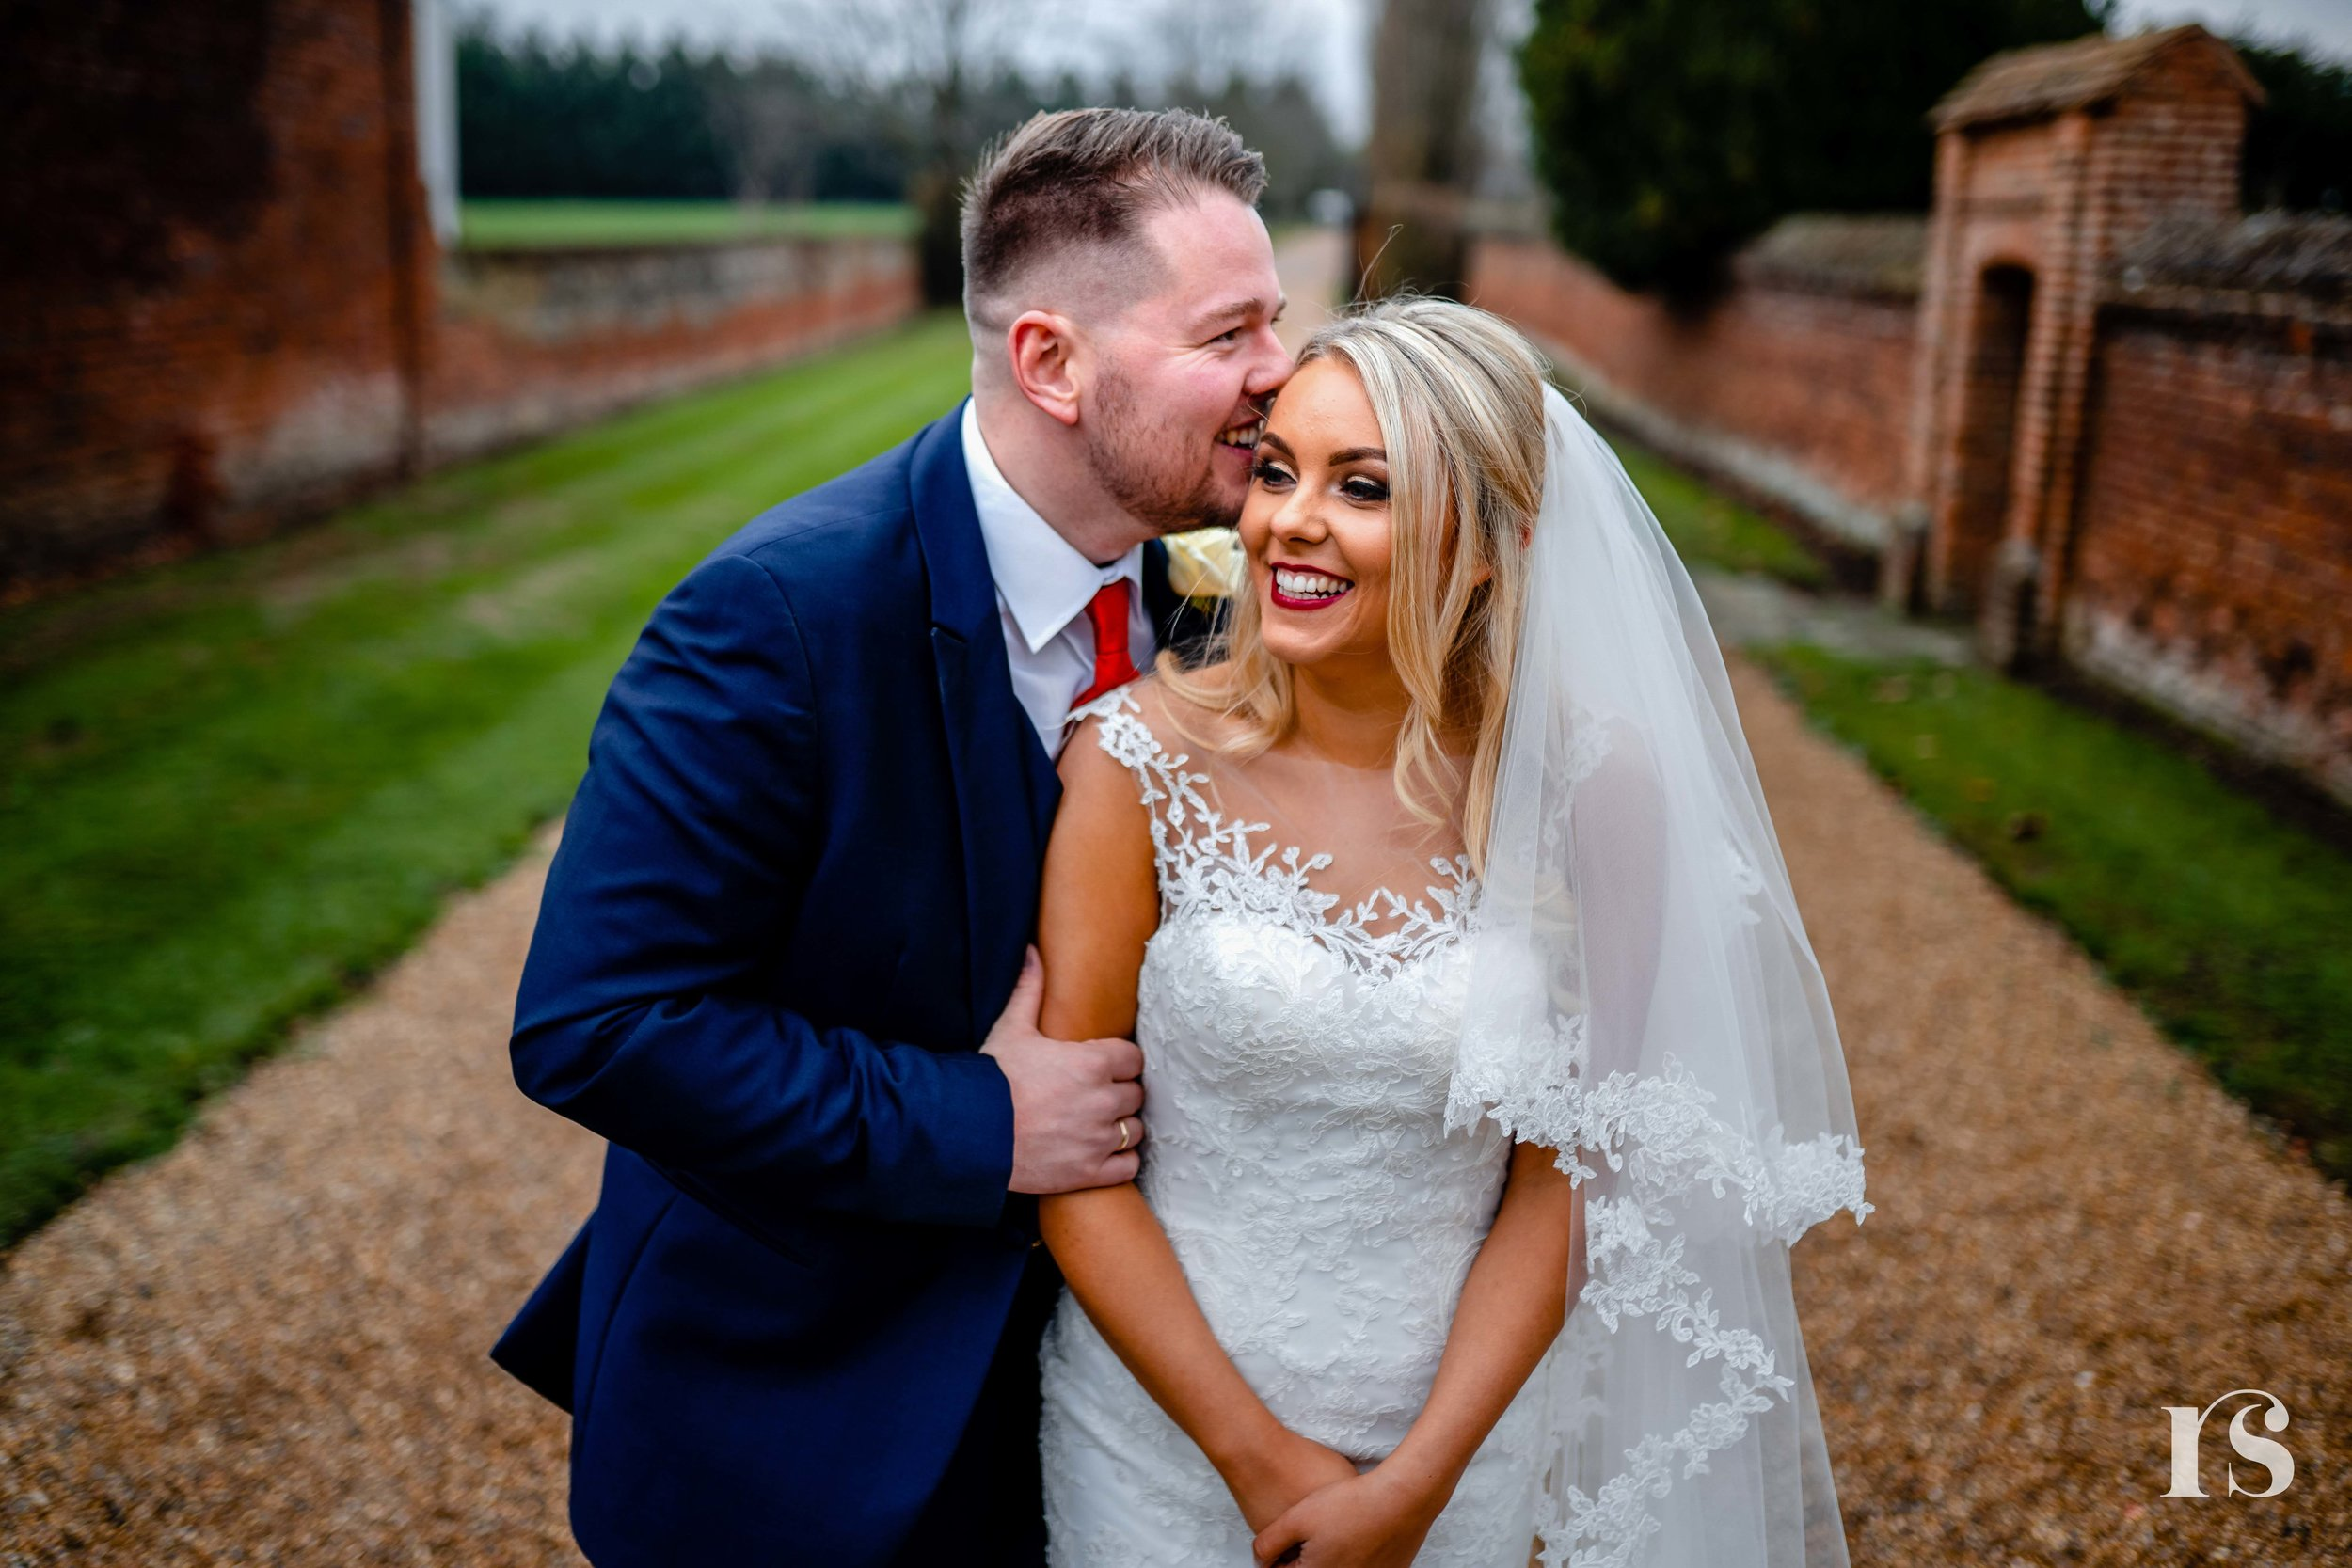 "Sam+Joe | Lillibrooke Manor - ""I cannot recommend Rich and Sonia enough!! From the initial chat, to sending across our wedding photos in a beautiful keepsake box, every single step of the way they have been absolutely brilliant!! They captured our wedding day perfectly, made the process of booking exceptionally easy, and most of all, they made us, our family and friends feel comfortable all day long. Our wedding photos are beautiful and I love showing them off to everyone. Thank you so much Rich and Sonia for capturing the love across us and our families all day. RS BROWN PHOTOGRAPHY - THE BEST PHOTOGRAPHERS FOR YOUR WEDDING DAY!"""